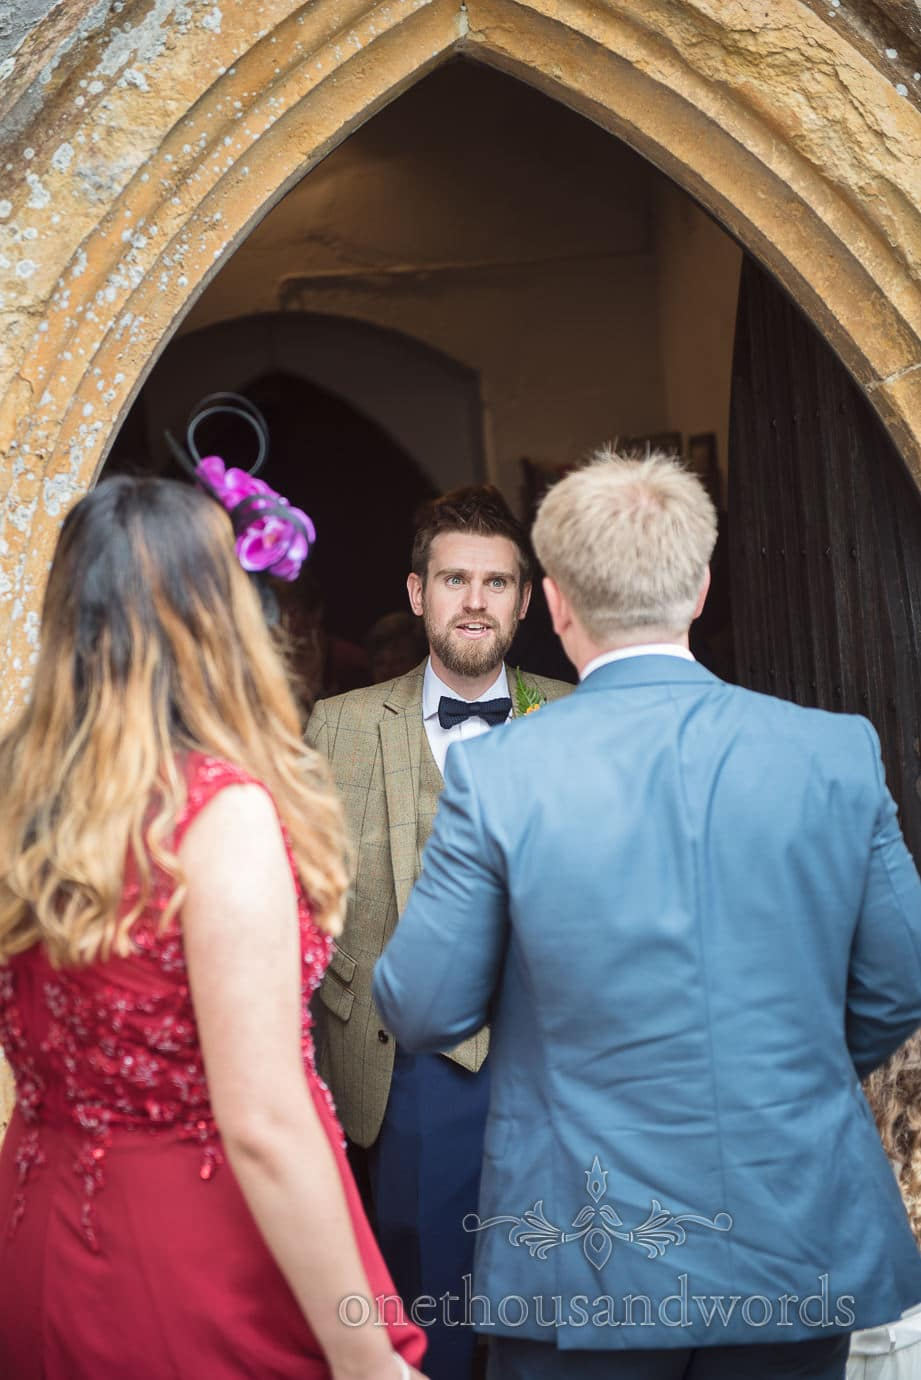 Groom in brown tweed greets wedding guests under stone church entrance archway